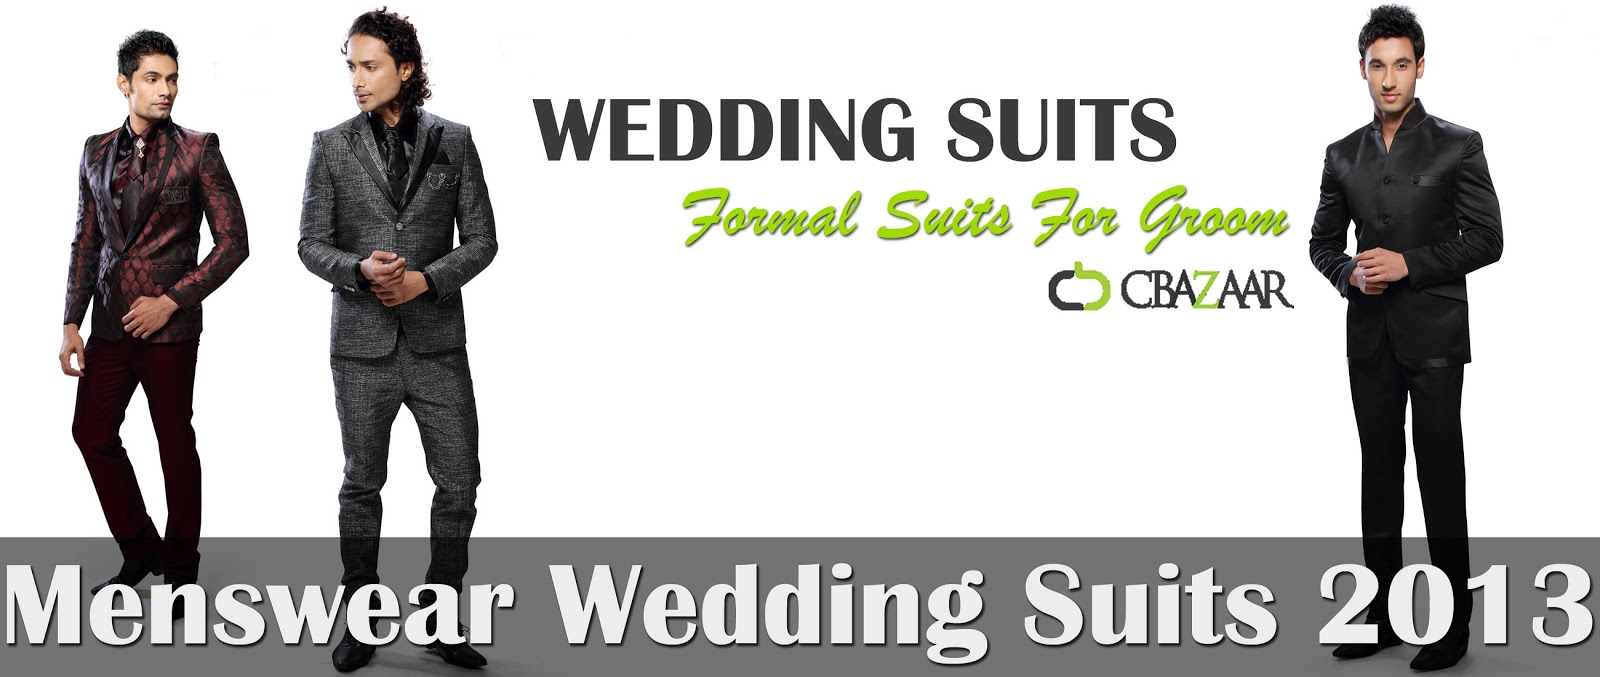 Menswear Wedding Suits 2013-2014 | Formal Suits For Groom | Indian ...